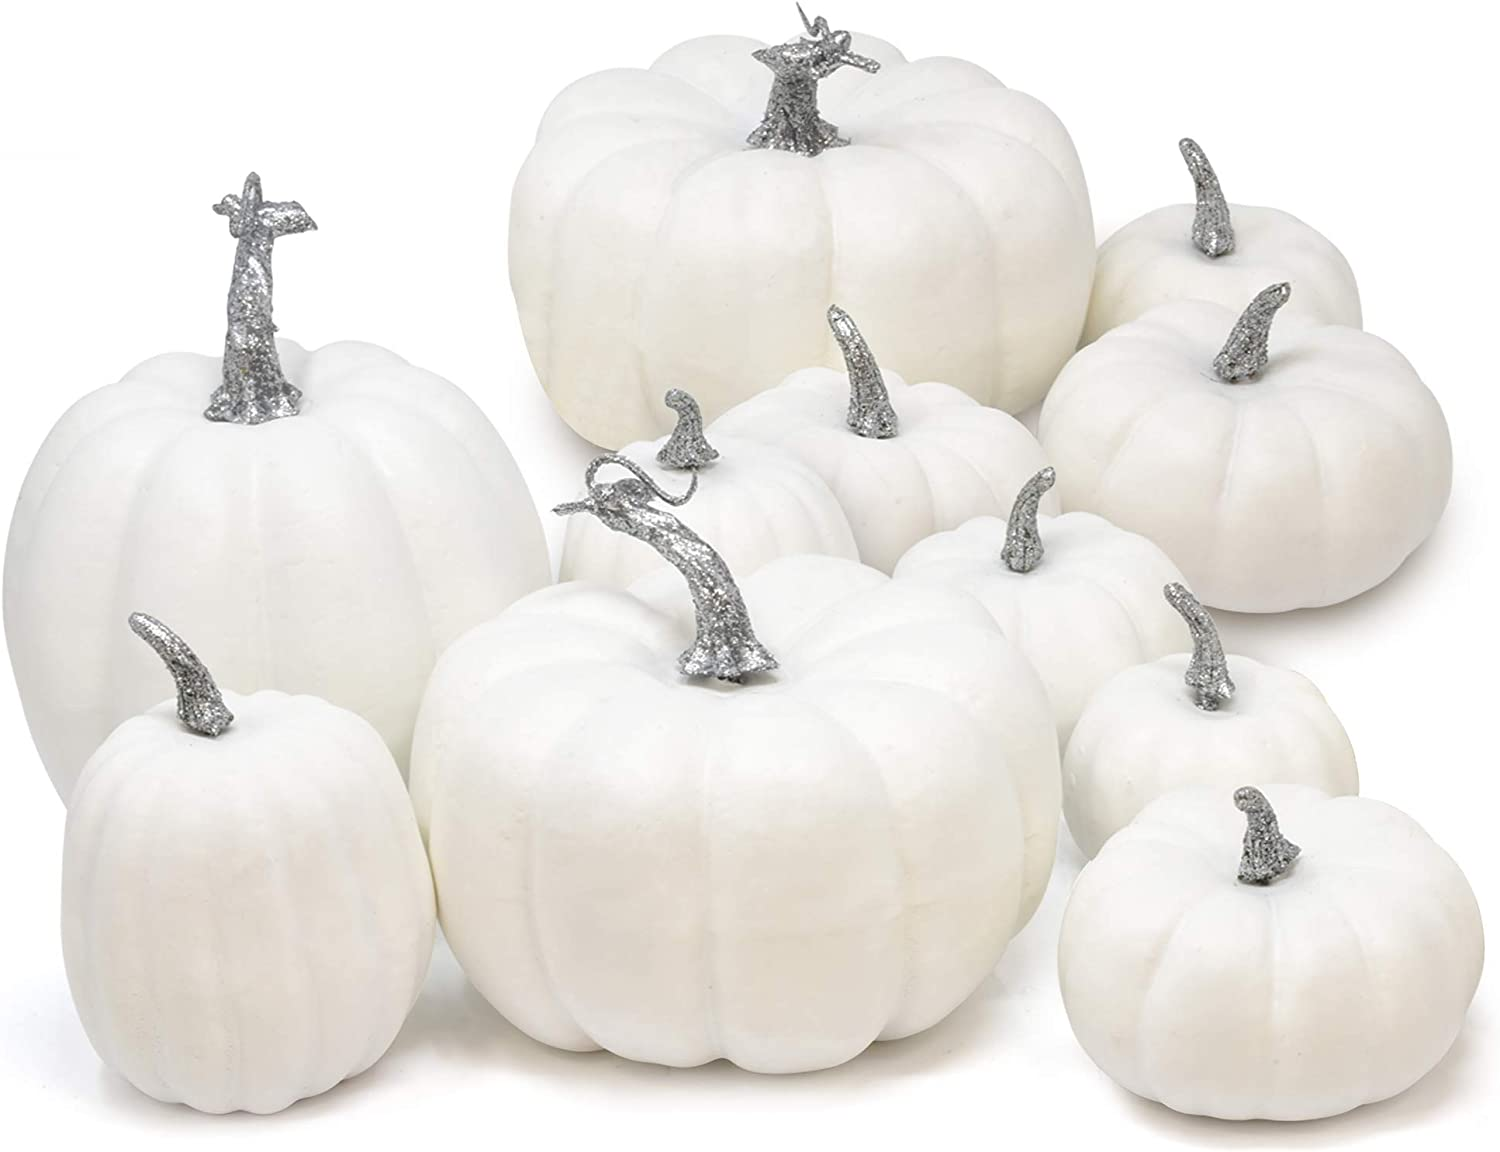 11 Count Artificial White Pumpkins Faux Harvest Pumpkin Decoration for Fall Wedding Thanksgiving Halloween Seasonal Holiday Autumn Tabletop Centerpiece Party Crafts and Home Decor Assorted Sizes